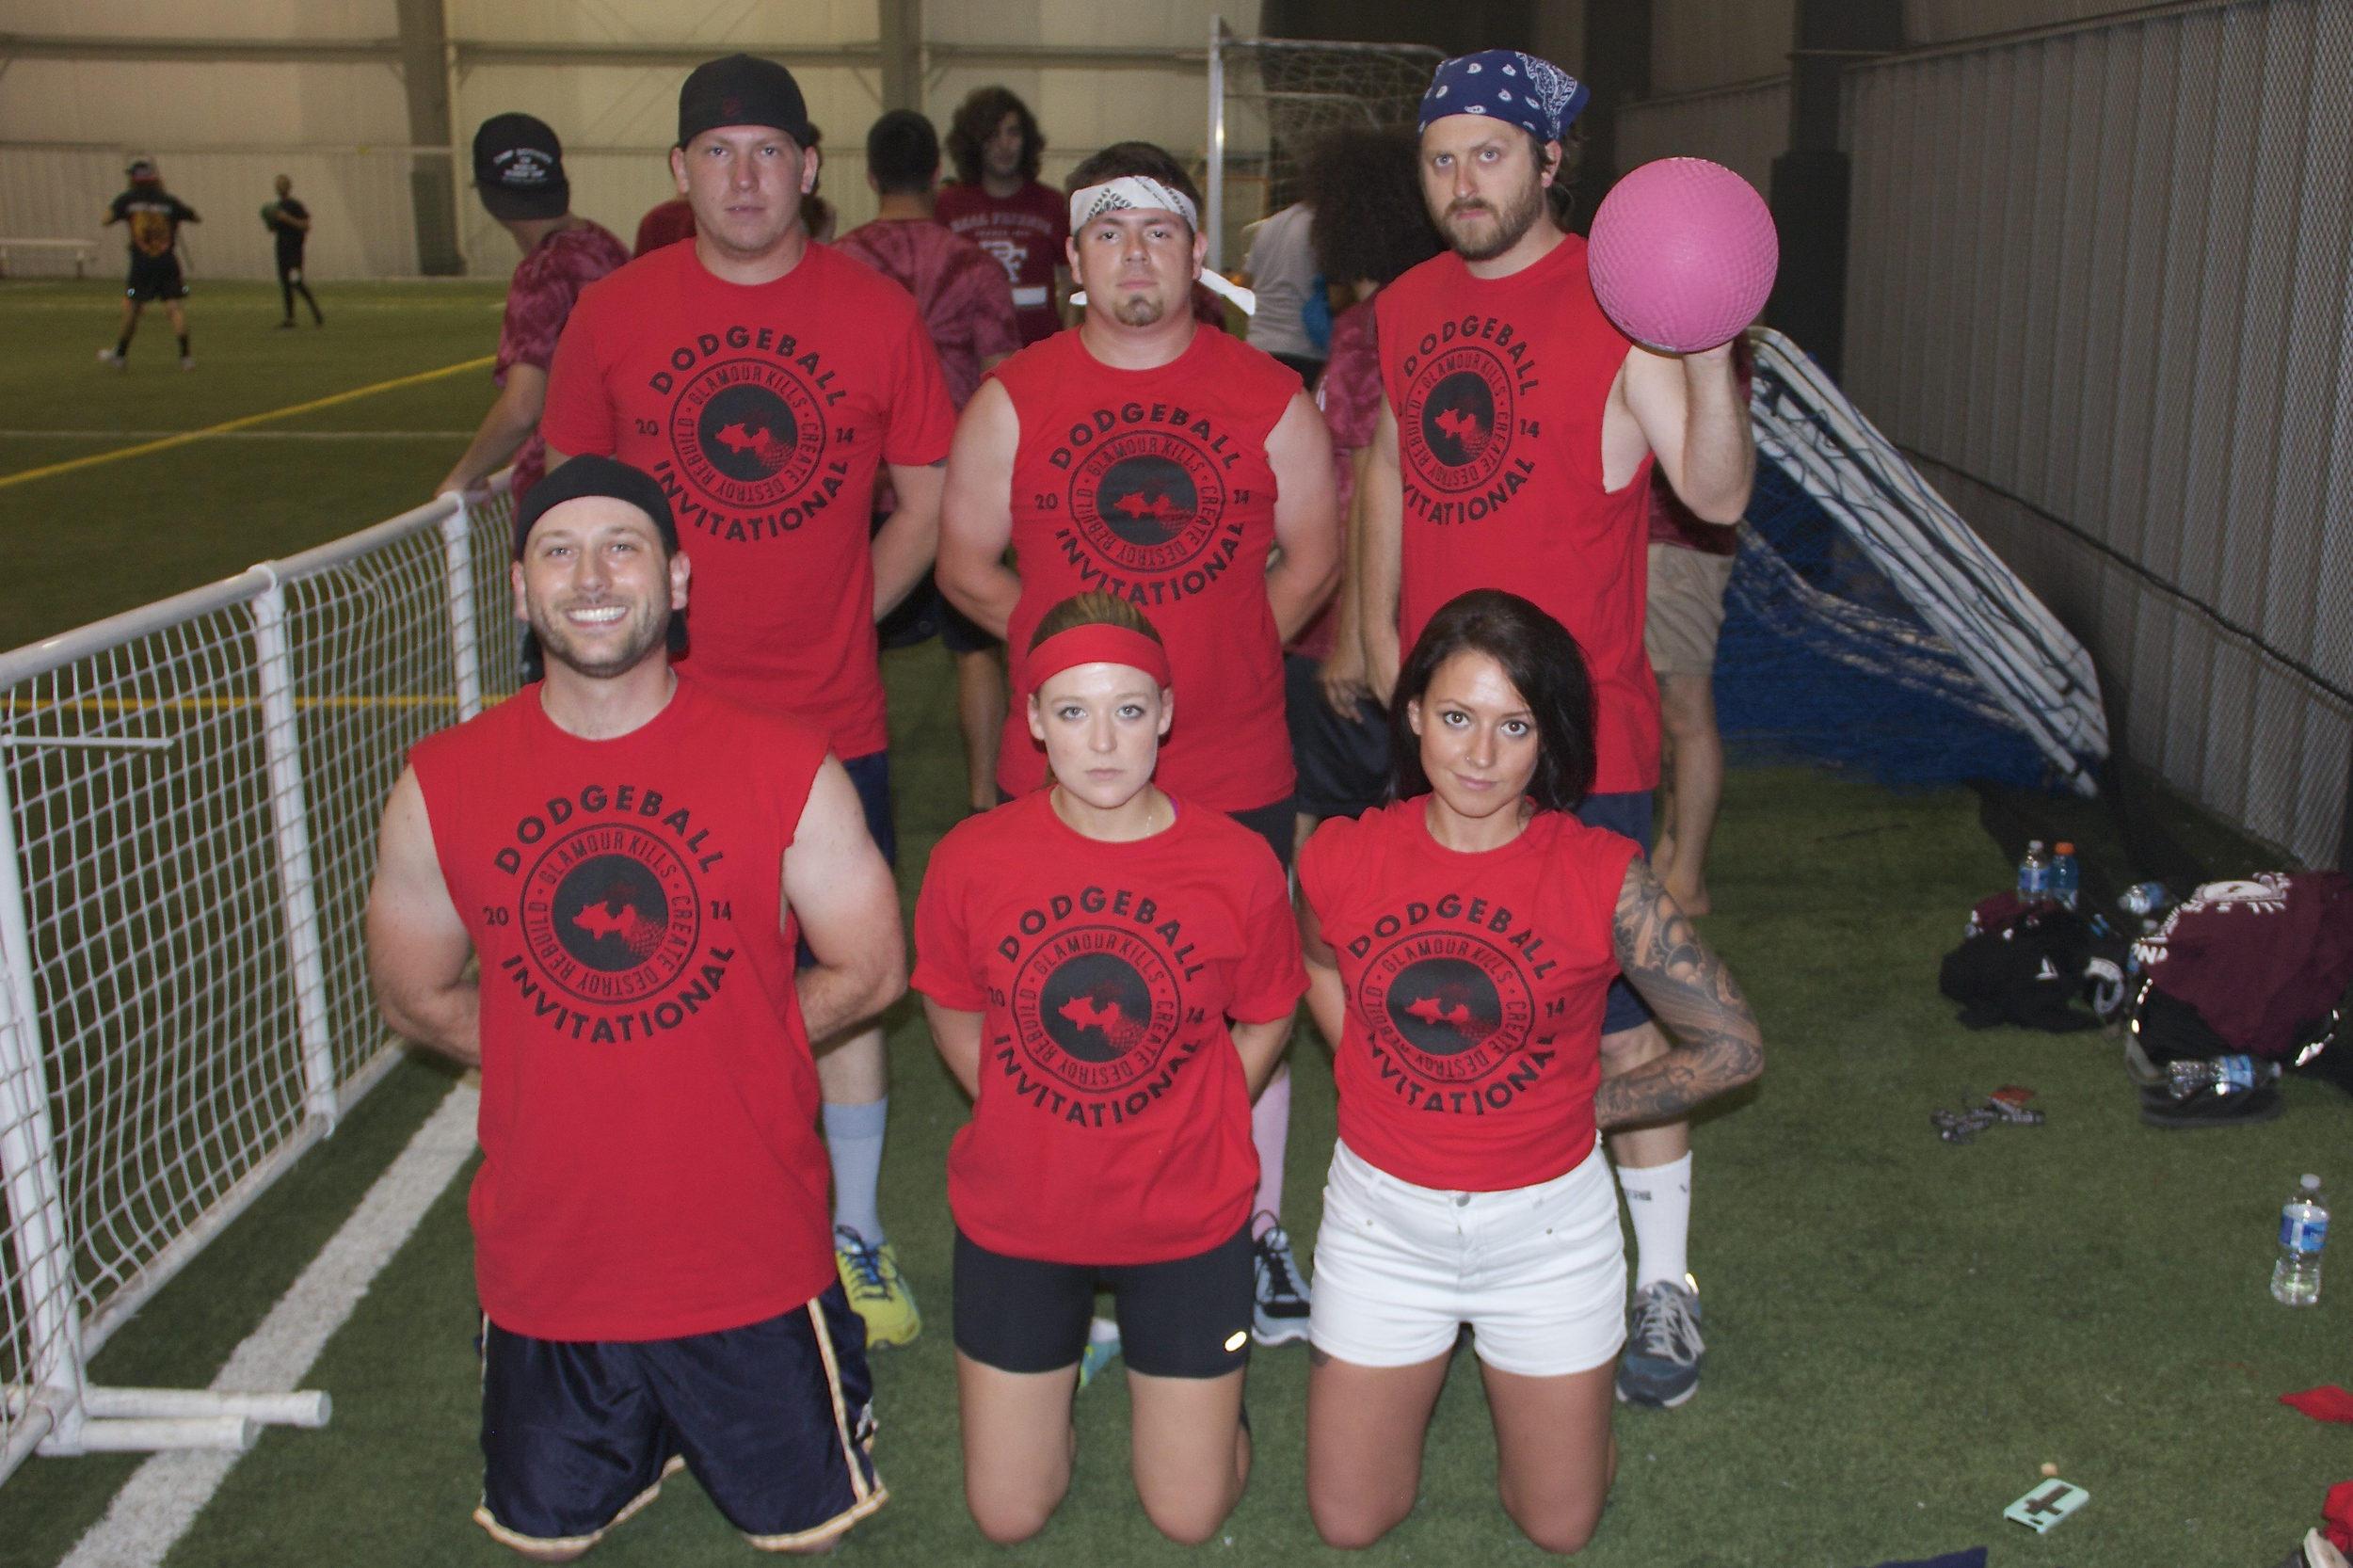 The official 2014 I Fight Dragons Dodgeball team. (rom top to bottom, left to right: Chad (drums), Tony (TM), Packy (guitar), Brian (vocals), me, Ashlee(Chad's GF))